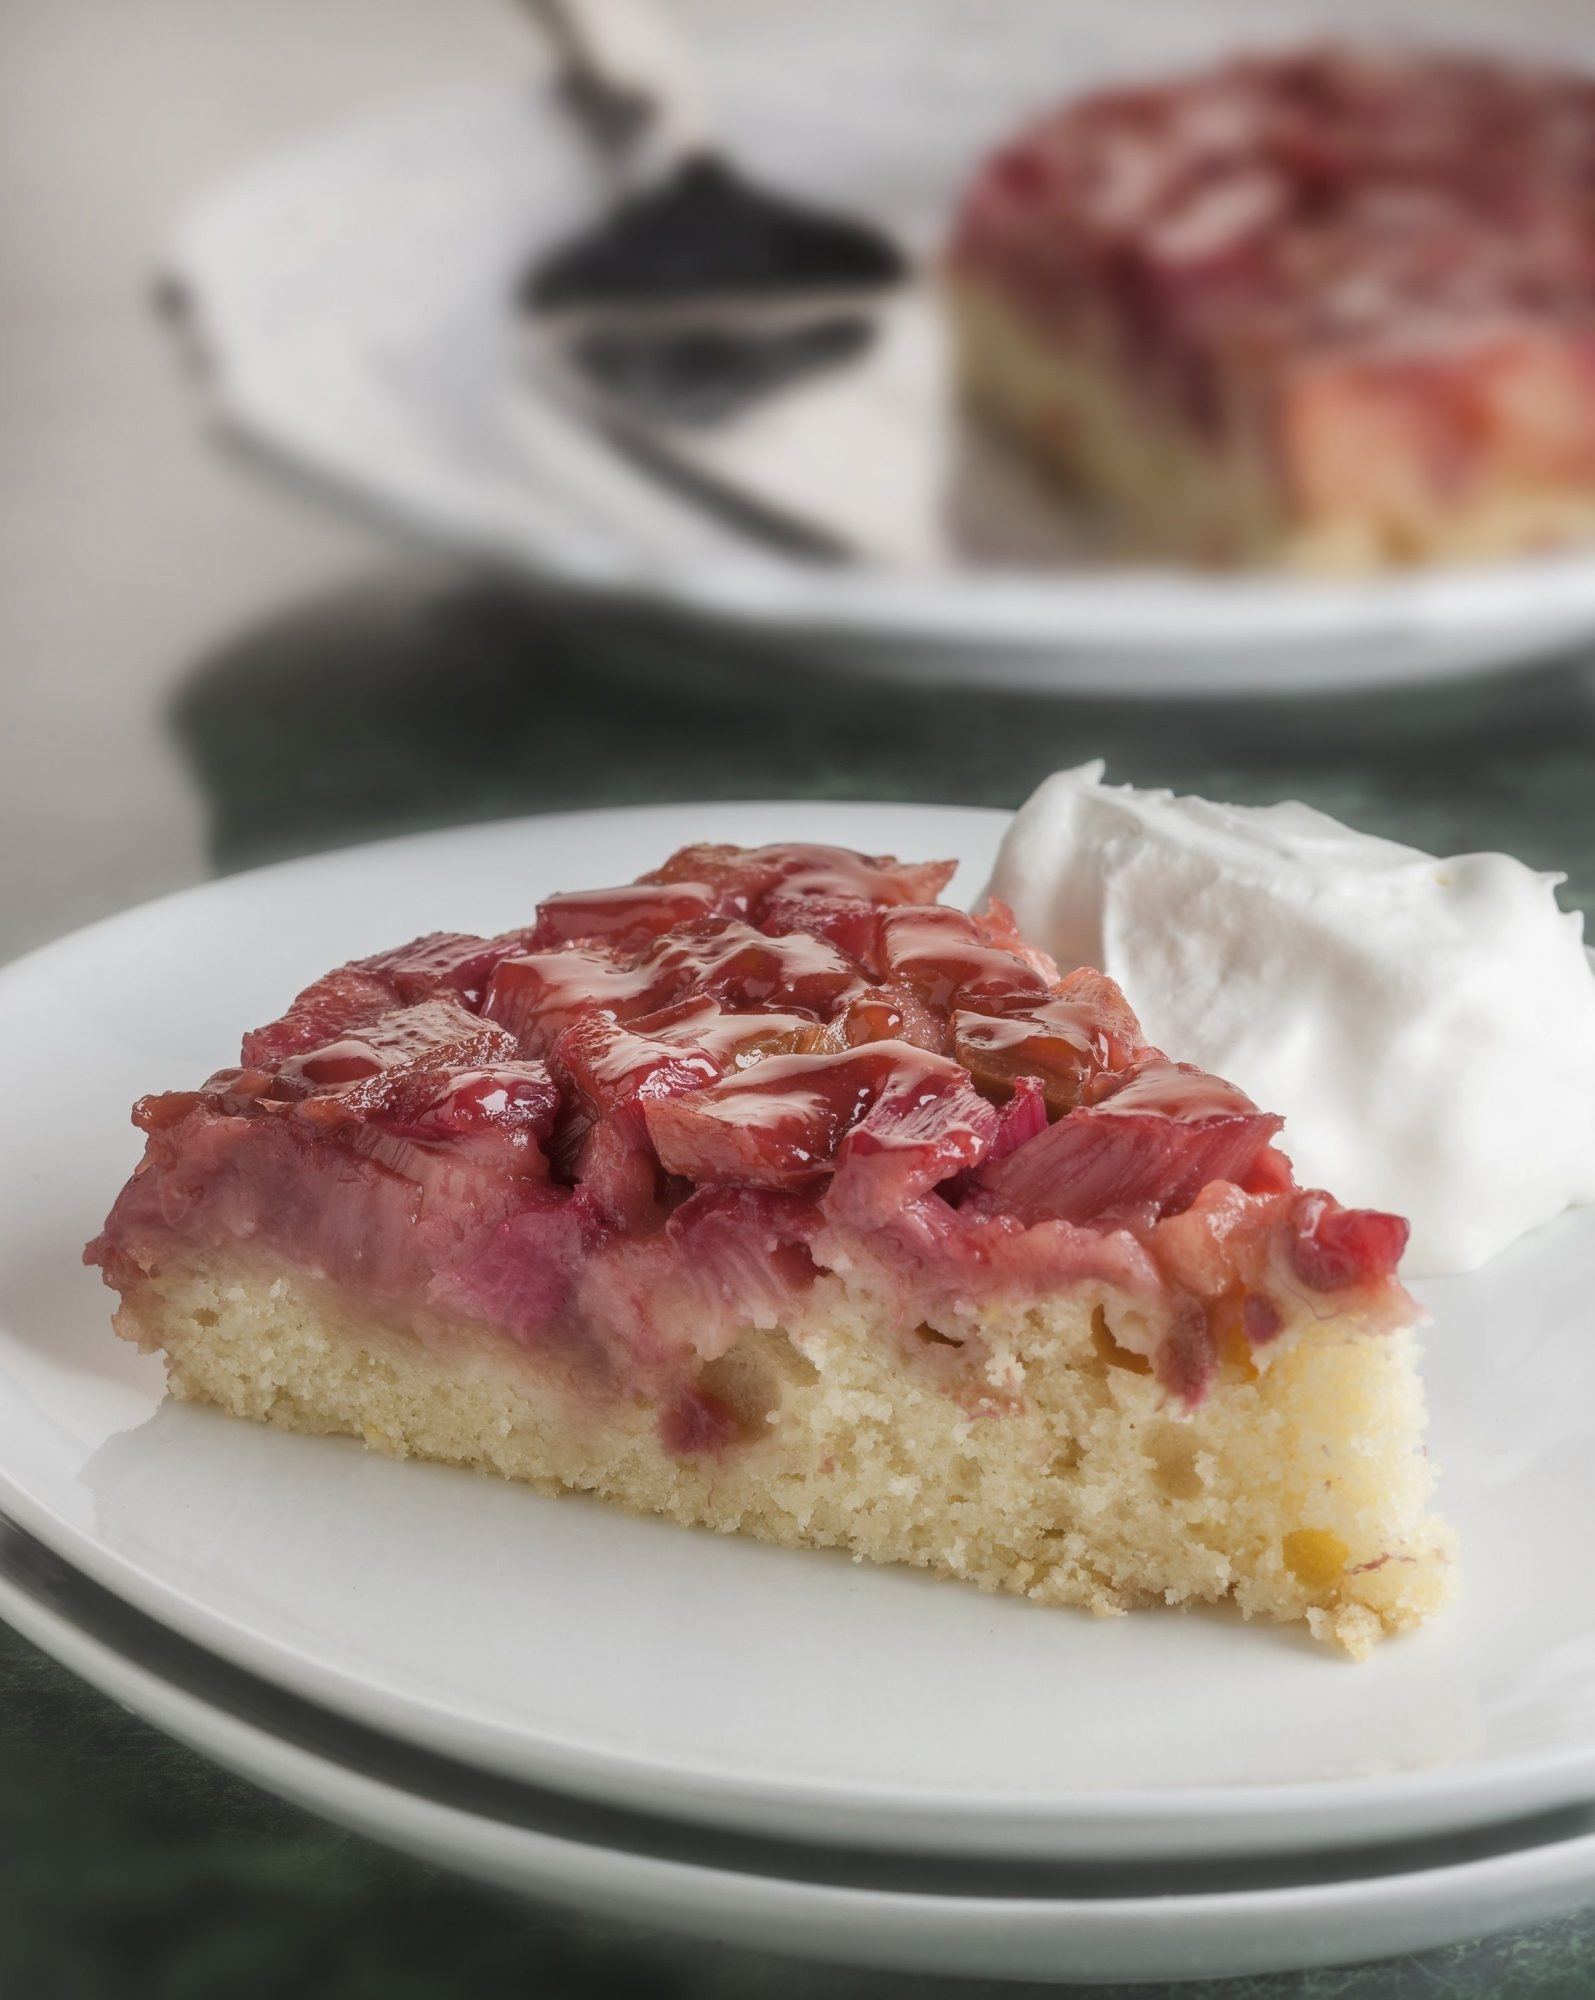 Upside-down cake is a delicious way to enjoy rhubarb from the home garden.